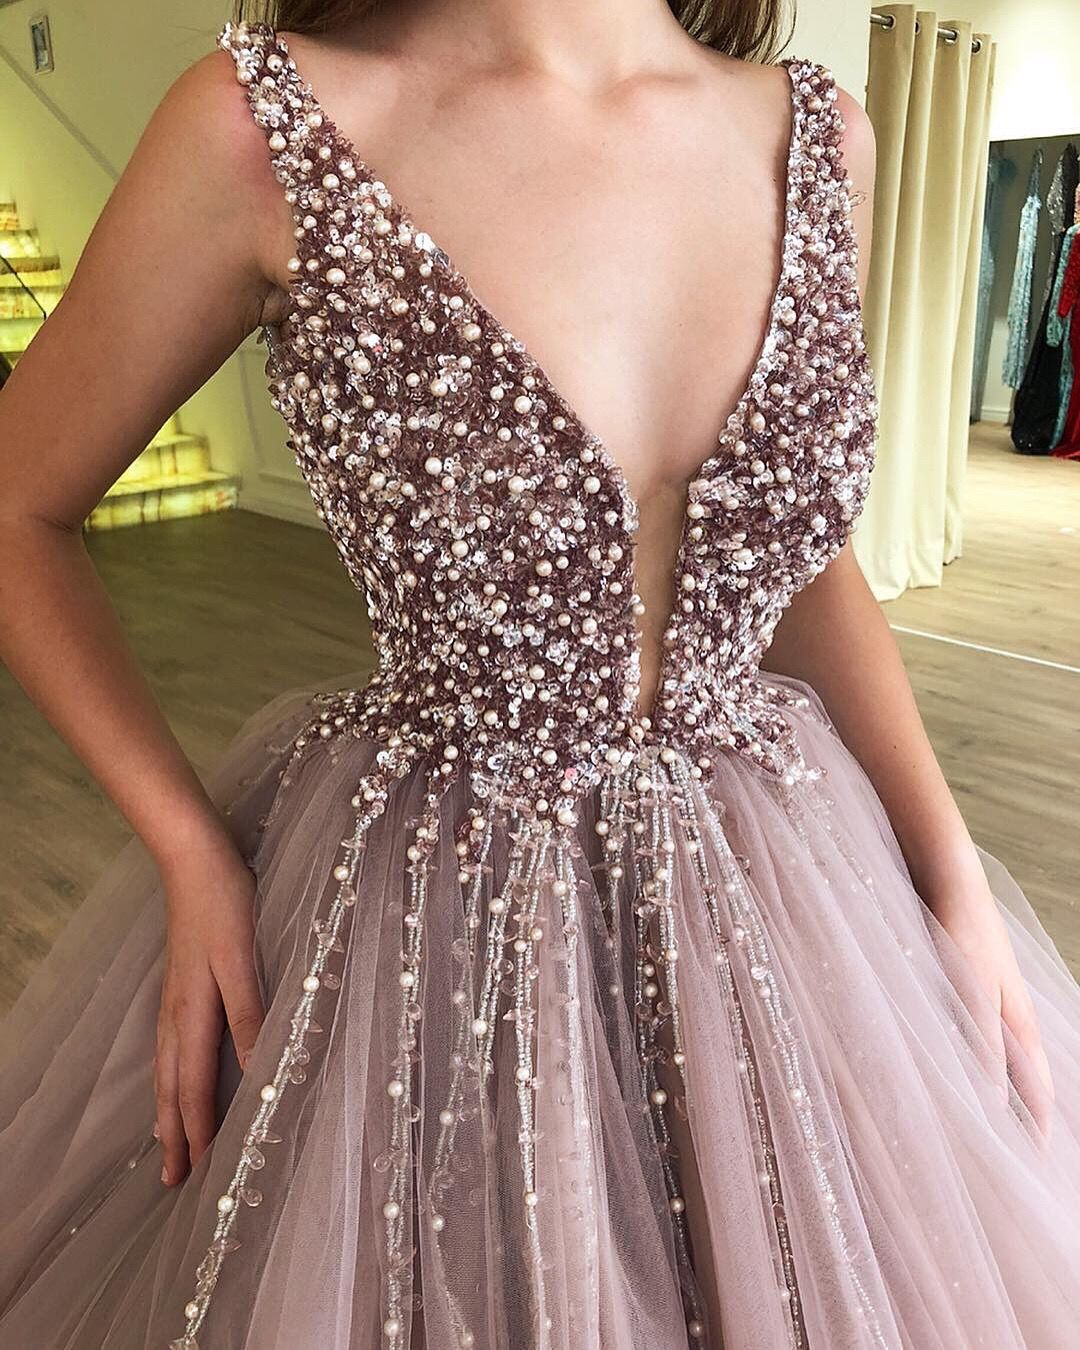 Something Special Stunning Prom Dresses Prom Dresses Sleeveless Gowns [ 1350 x 1080 Pixel ]